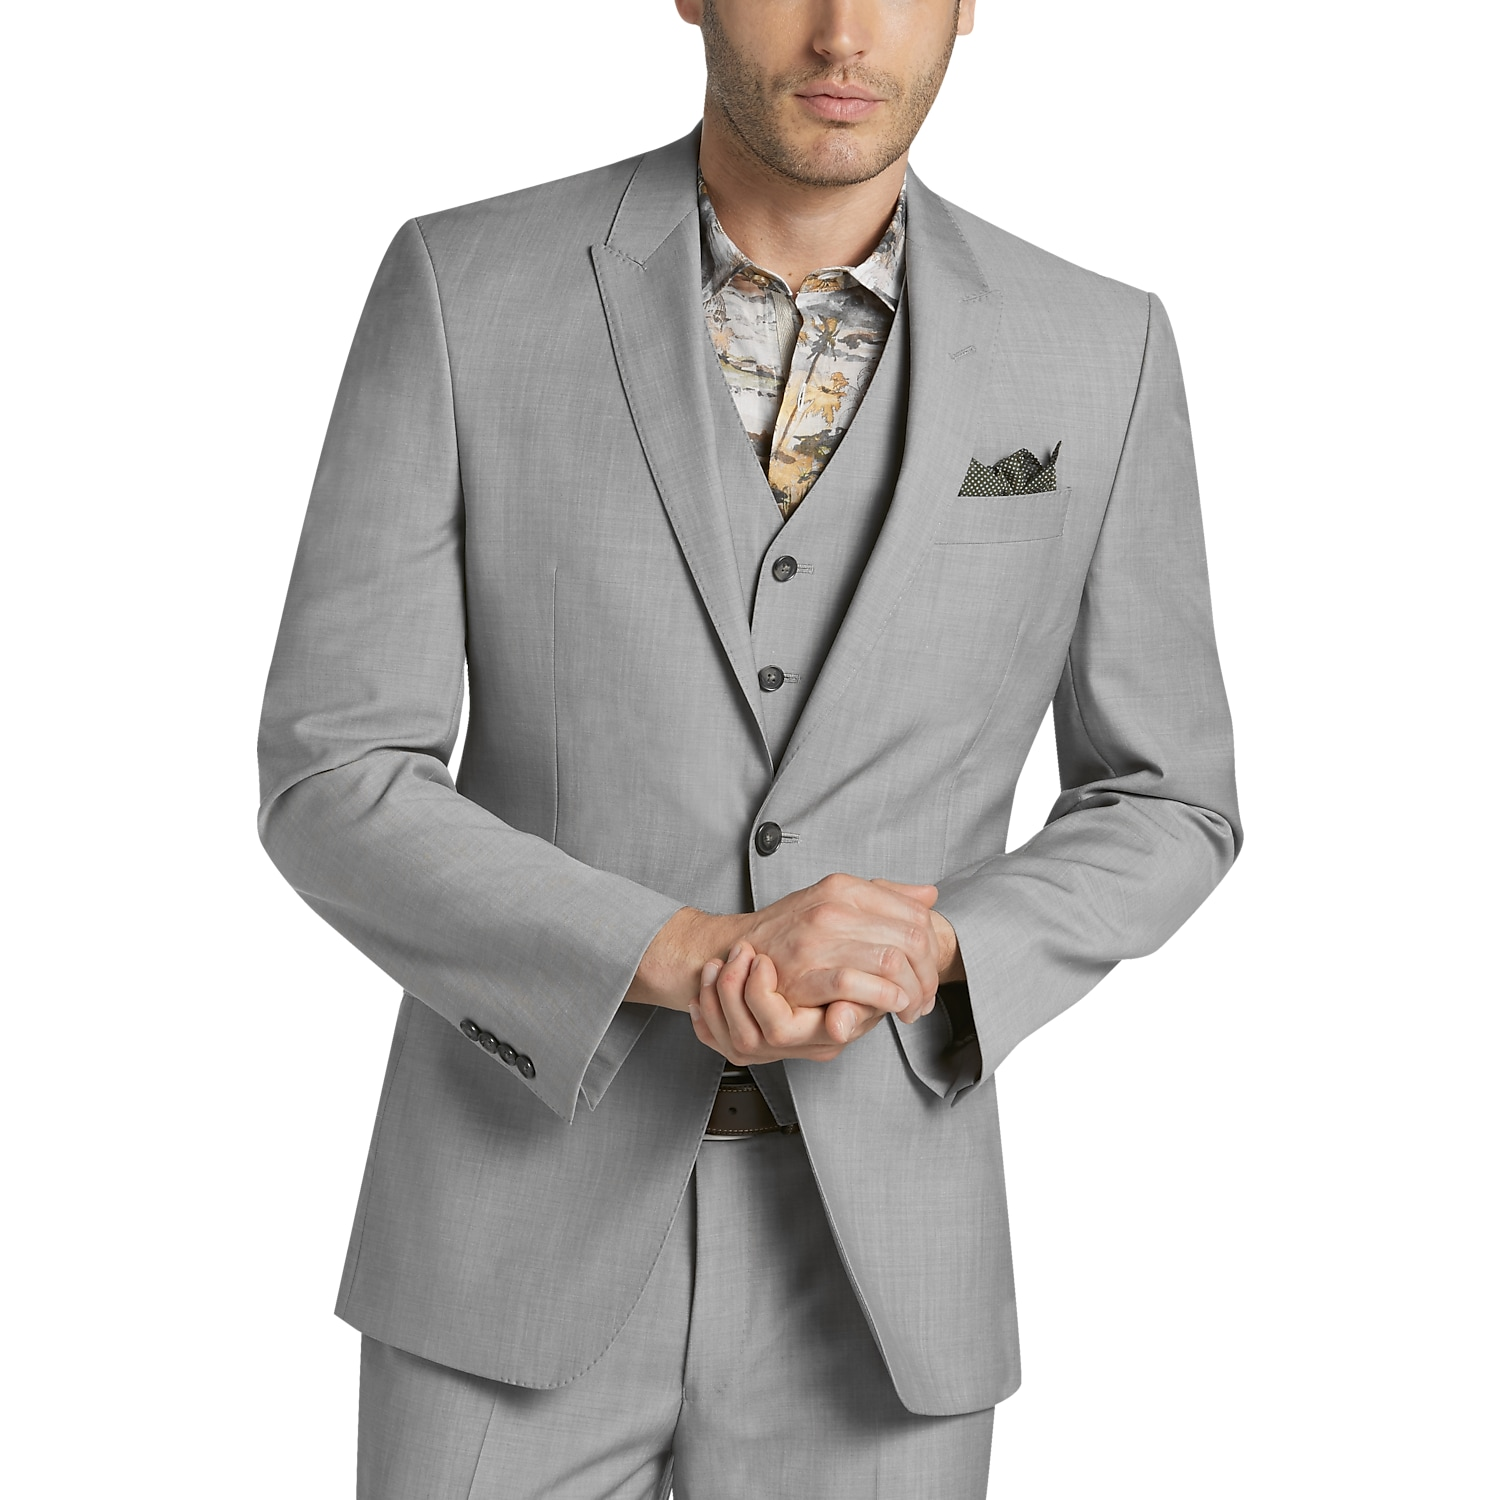 Linen Three Piece Suit ($ - $1,): 30 of items - Shop Linen Three Piece Suit from ALL your favorite stores & find HUGE SAVINGS up to 80% off Linen Three Piece Suit, including GREAT DEALS like Hotel Suite 3-Piece Oversized Duvet Cover Set Twin Linen Other Brown ($).